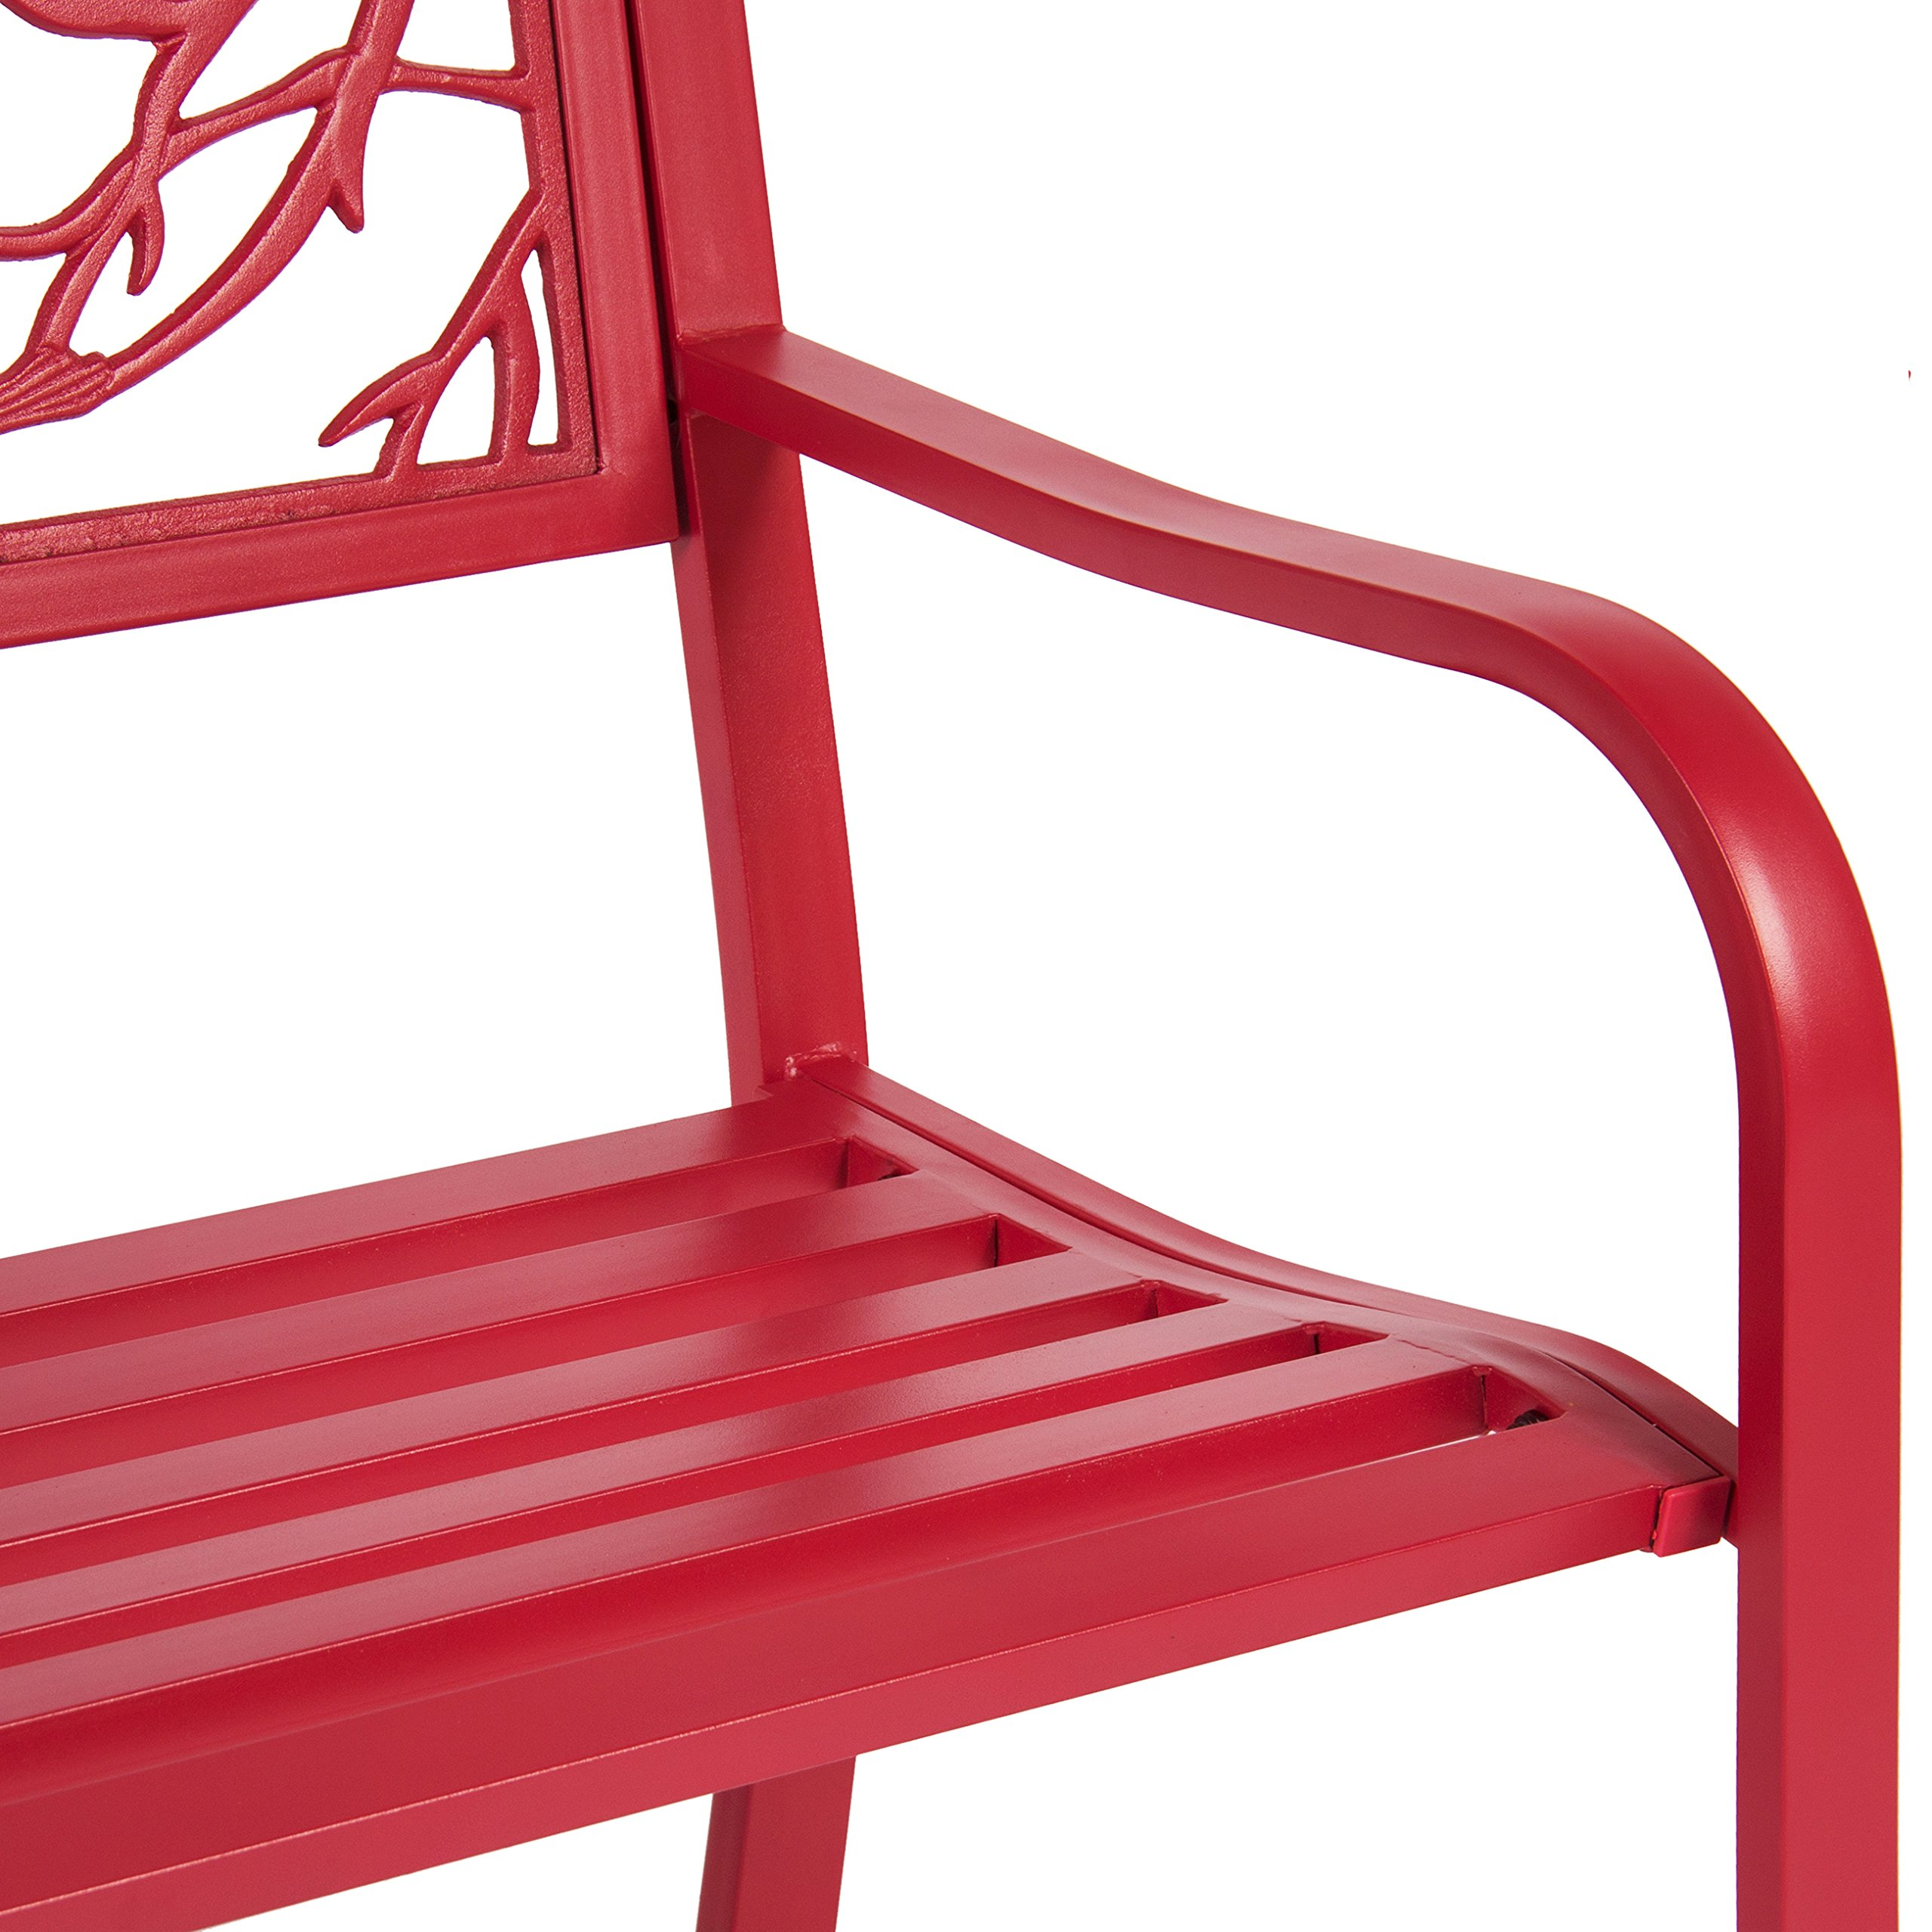 Best Choice Products Steel Park Bench Porch Furniture for Outdoor, Garden, Patio - Red by Best Choice Products (Image #4)